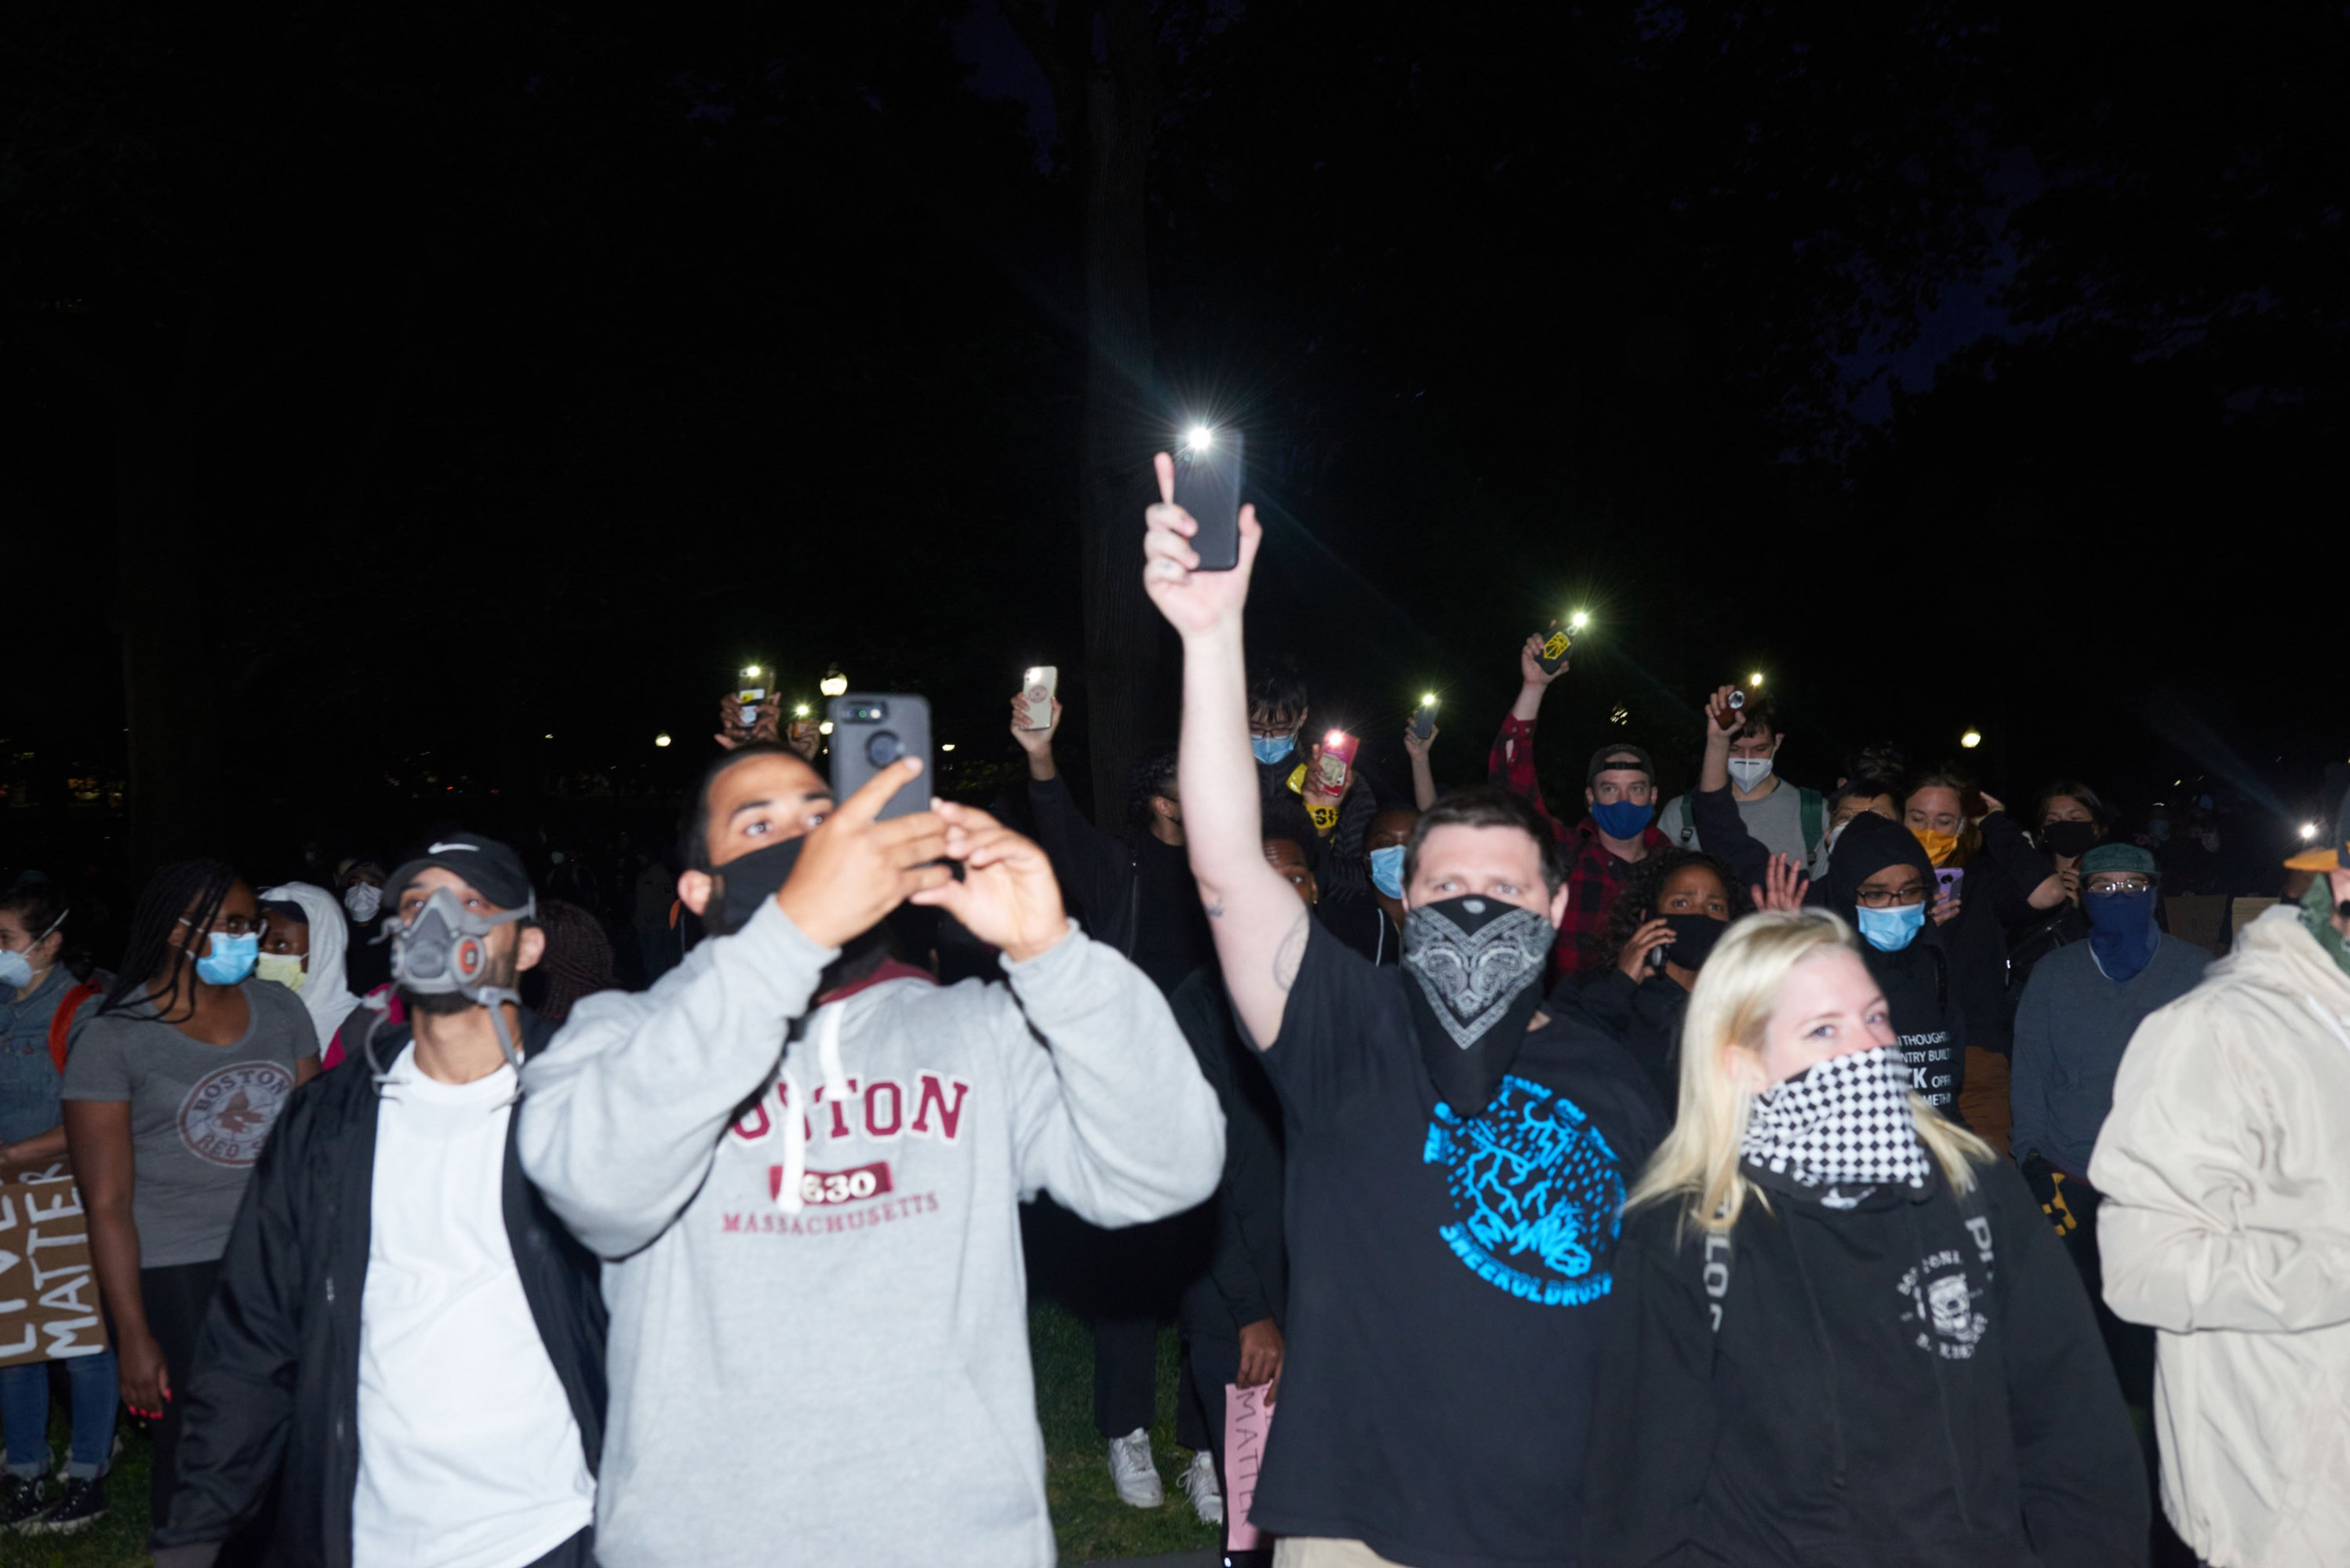 Photograph of a crowd at a BLM protest with smartphones recording